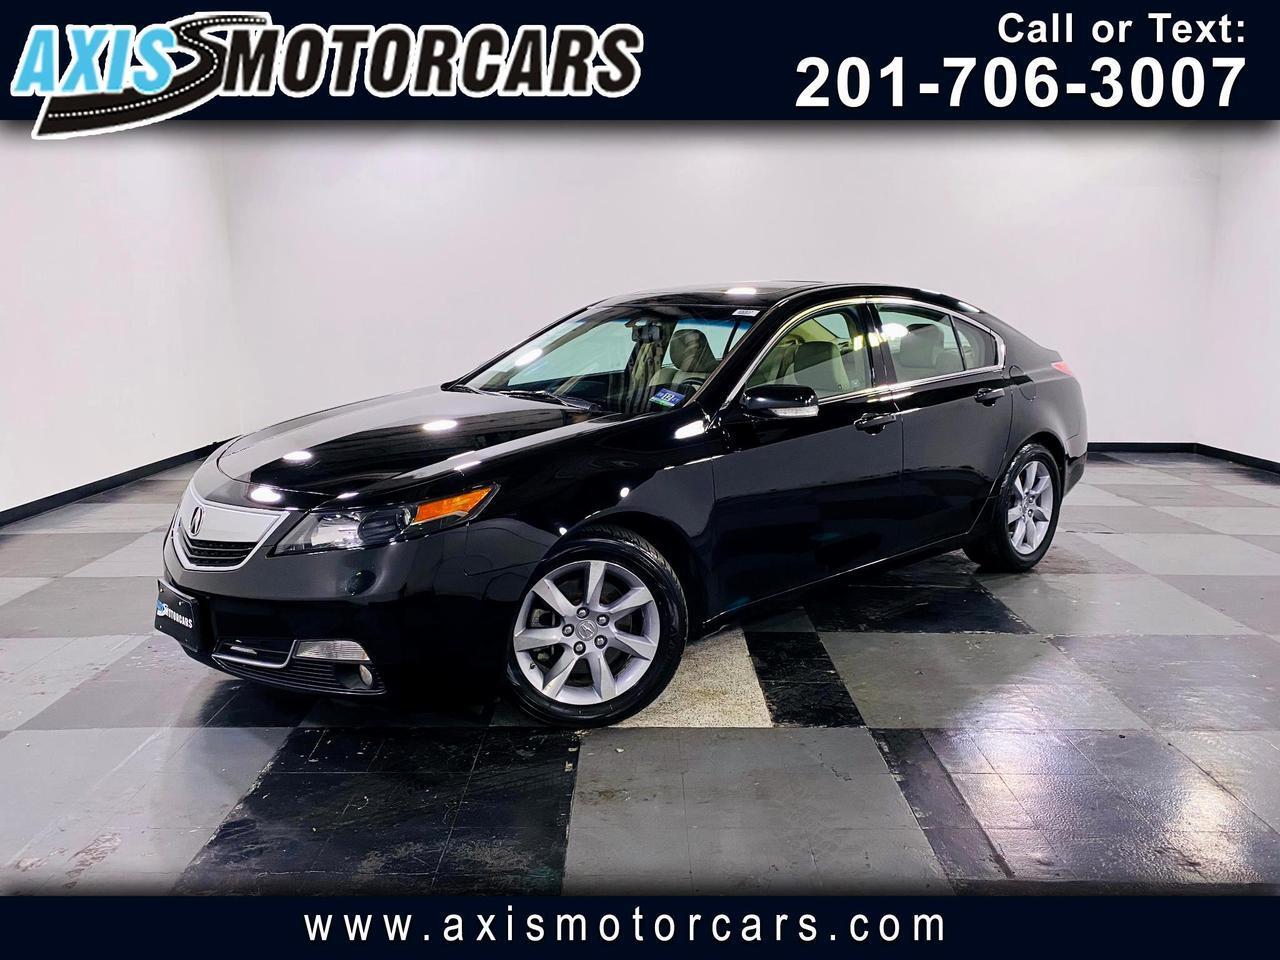 2012 Acura TL 4dr w/Sun Roof Jersey City NJ